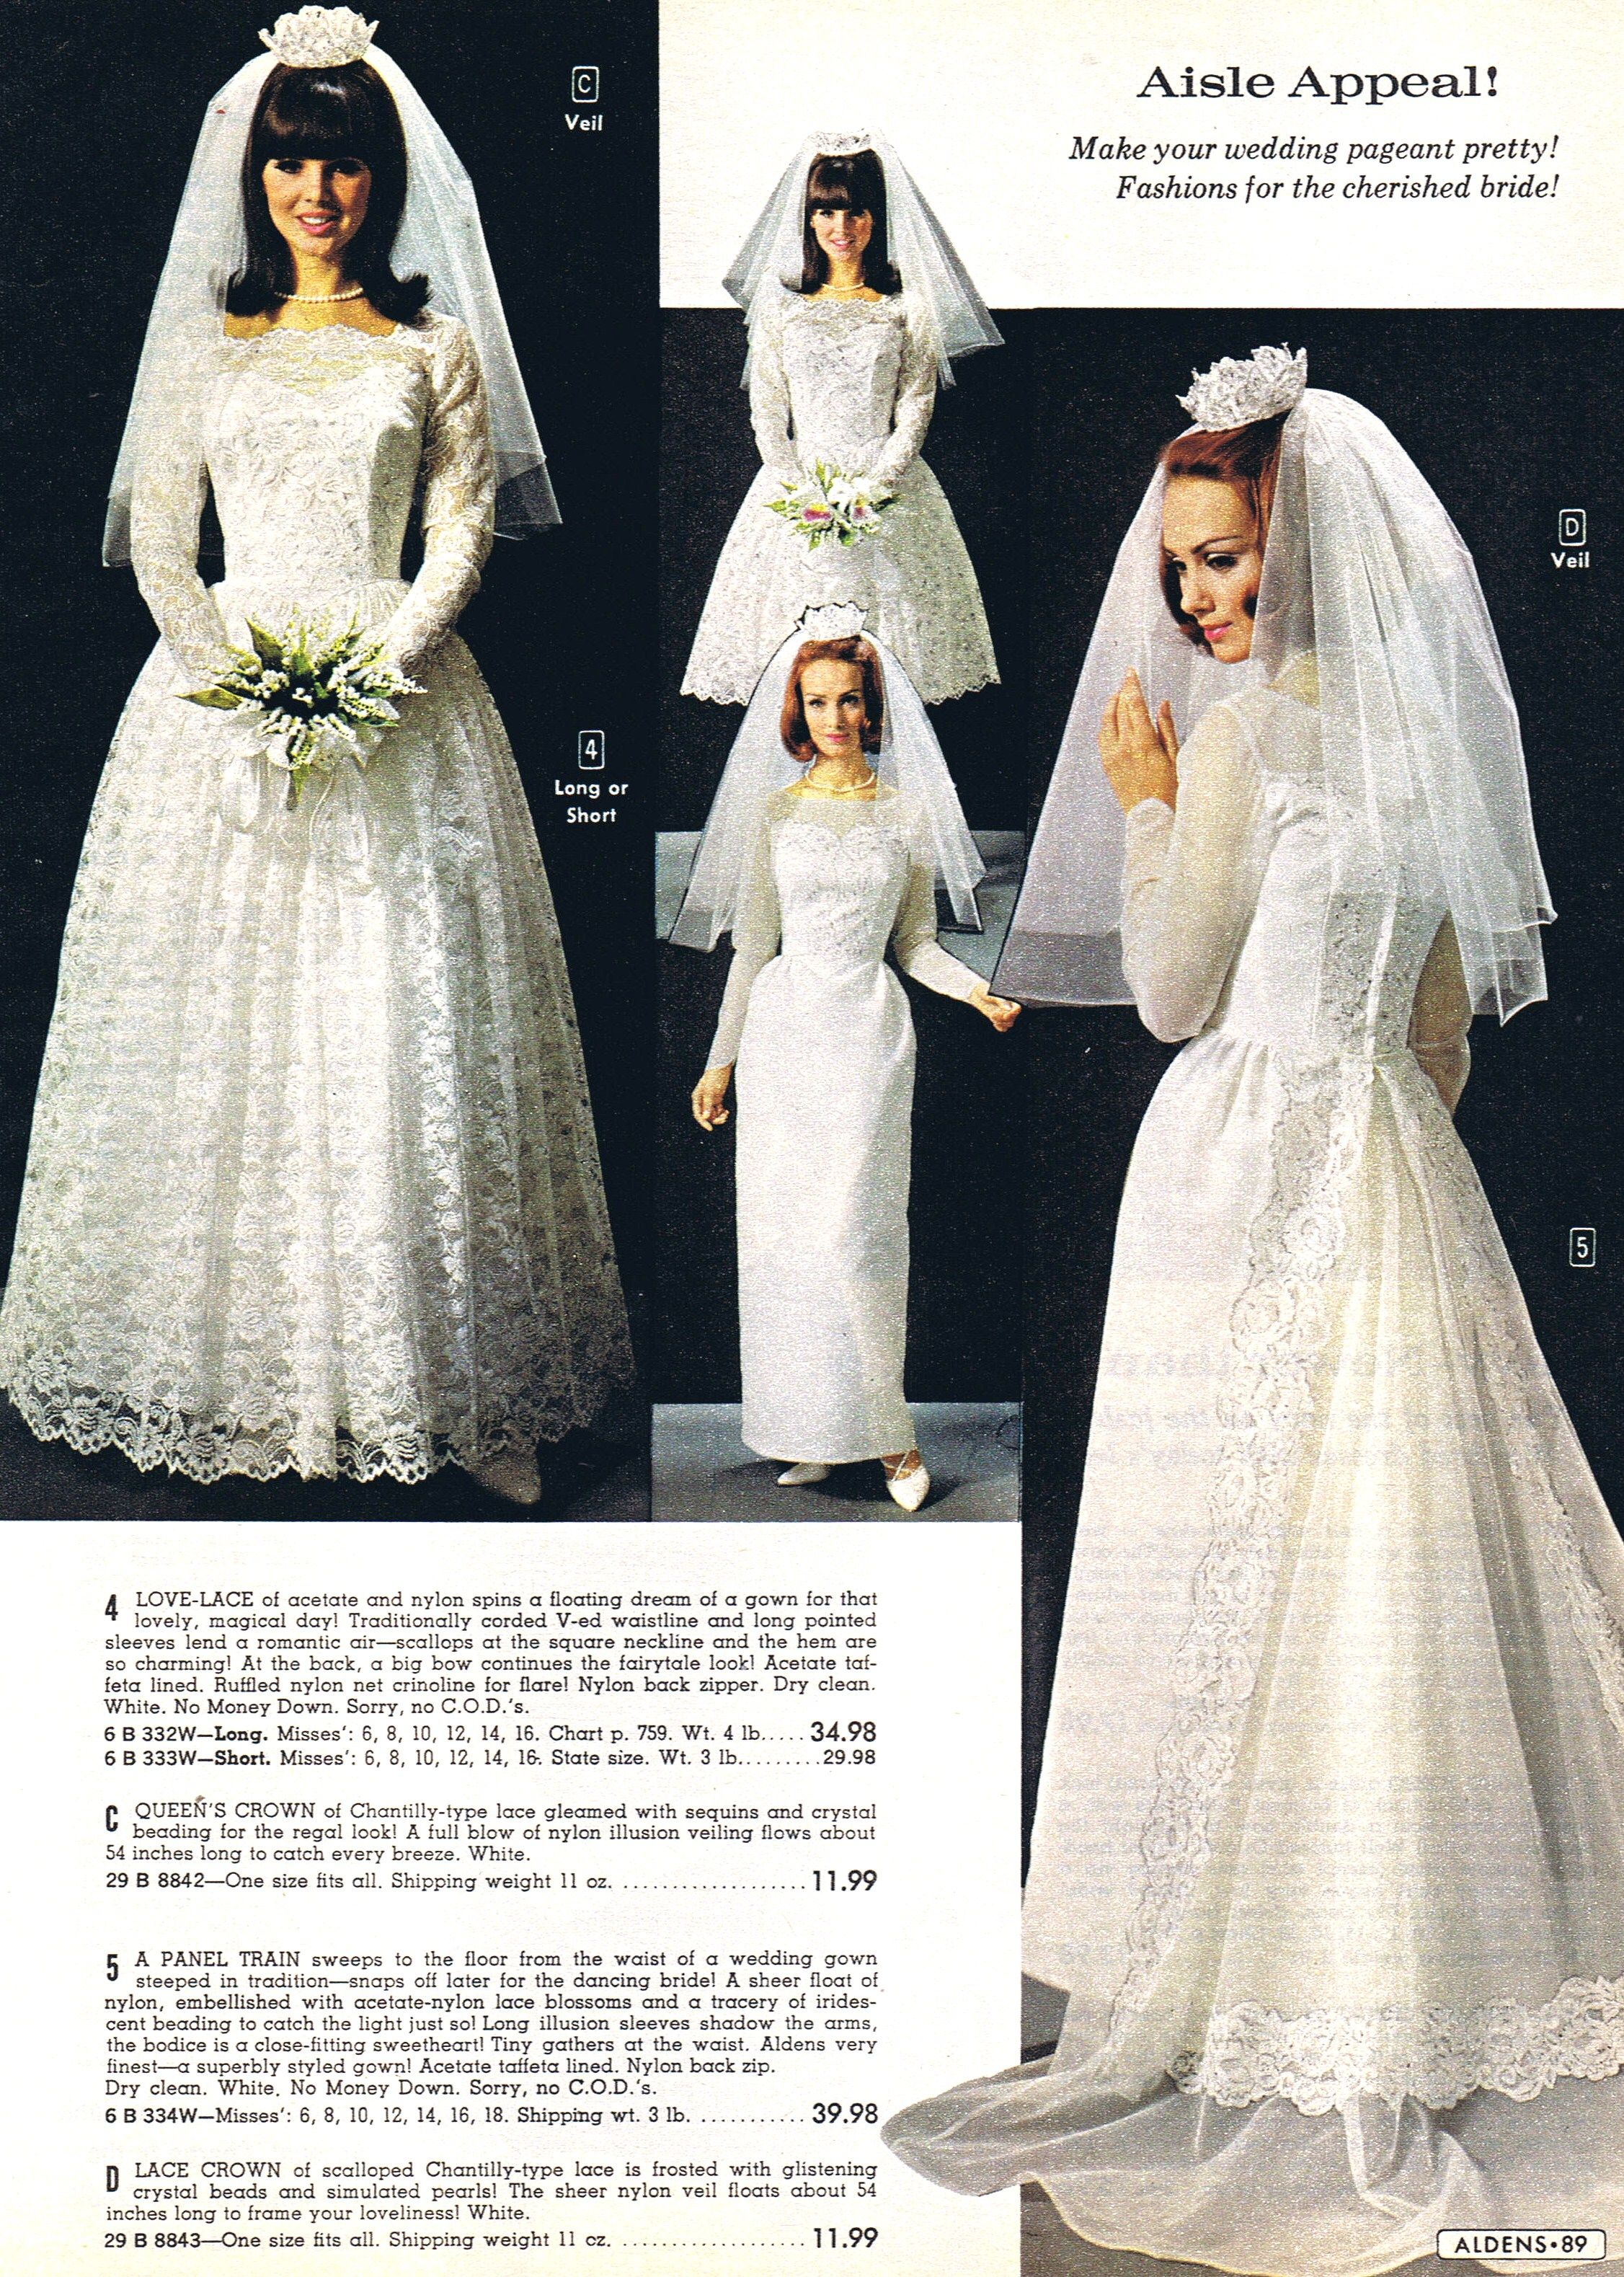 1967 Bridal Fashionsthe Model On The Left Sure Looks Like Marlo Thomas In That Girl: 1970 Dresses Vintage Weddings At Reisefeber.org